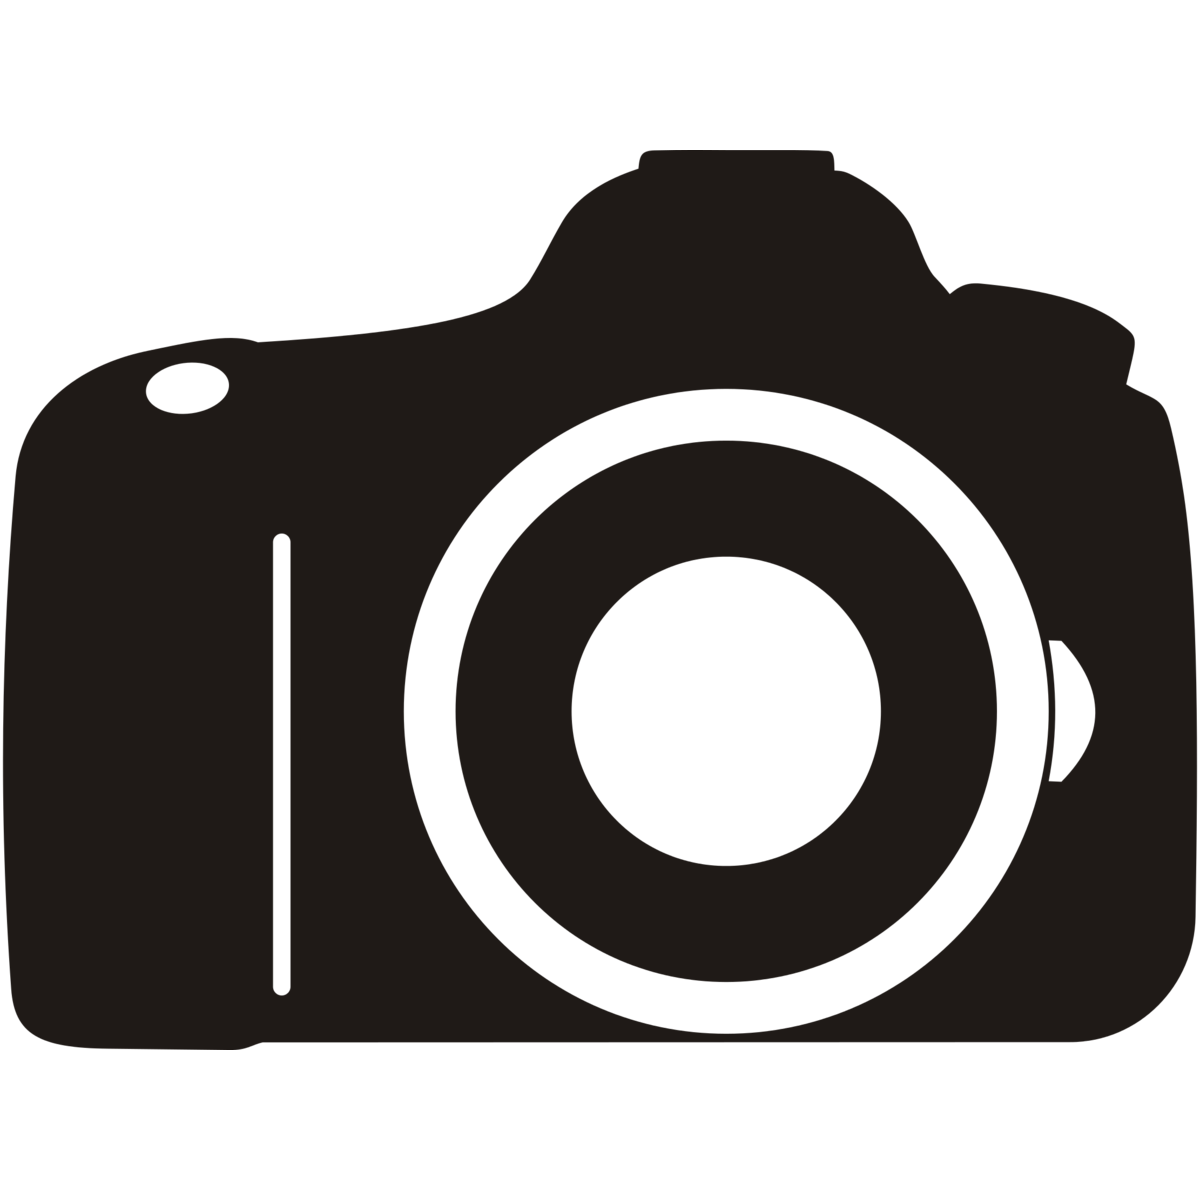 Camera clipart png. Collection of photo